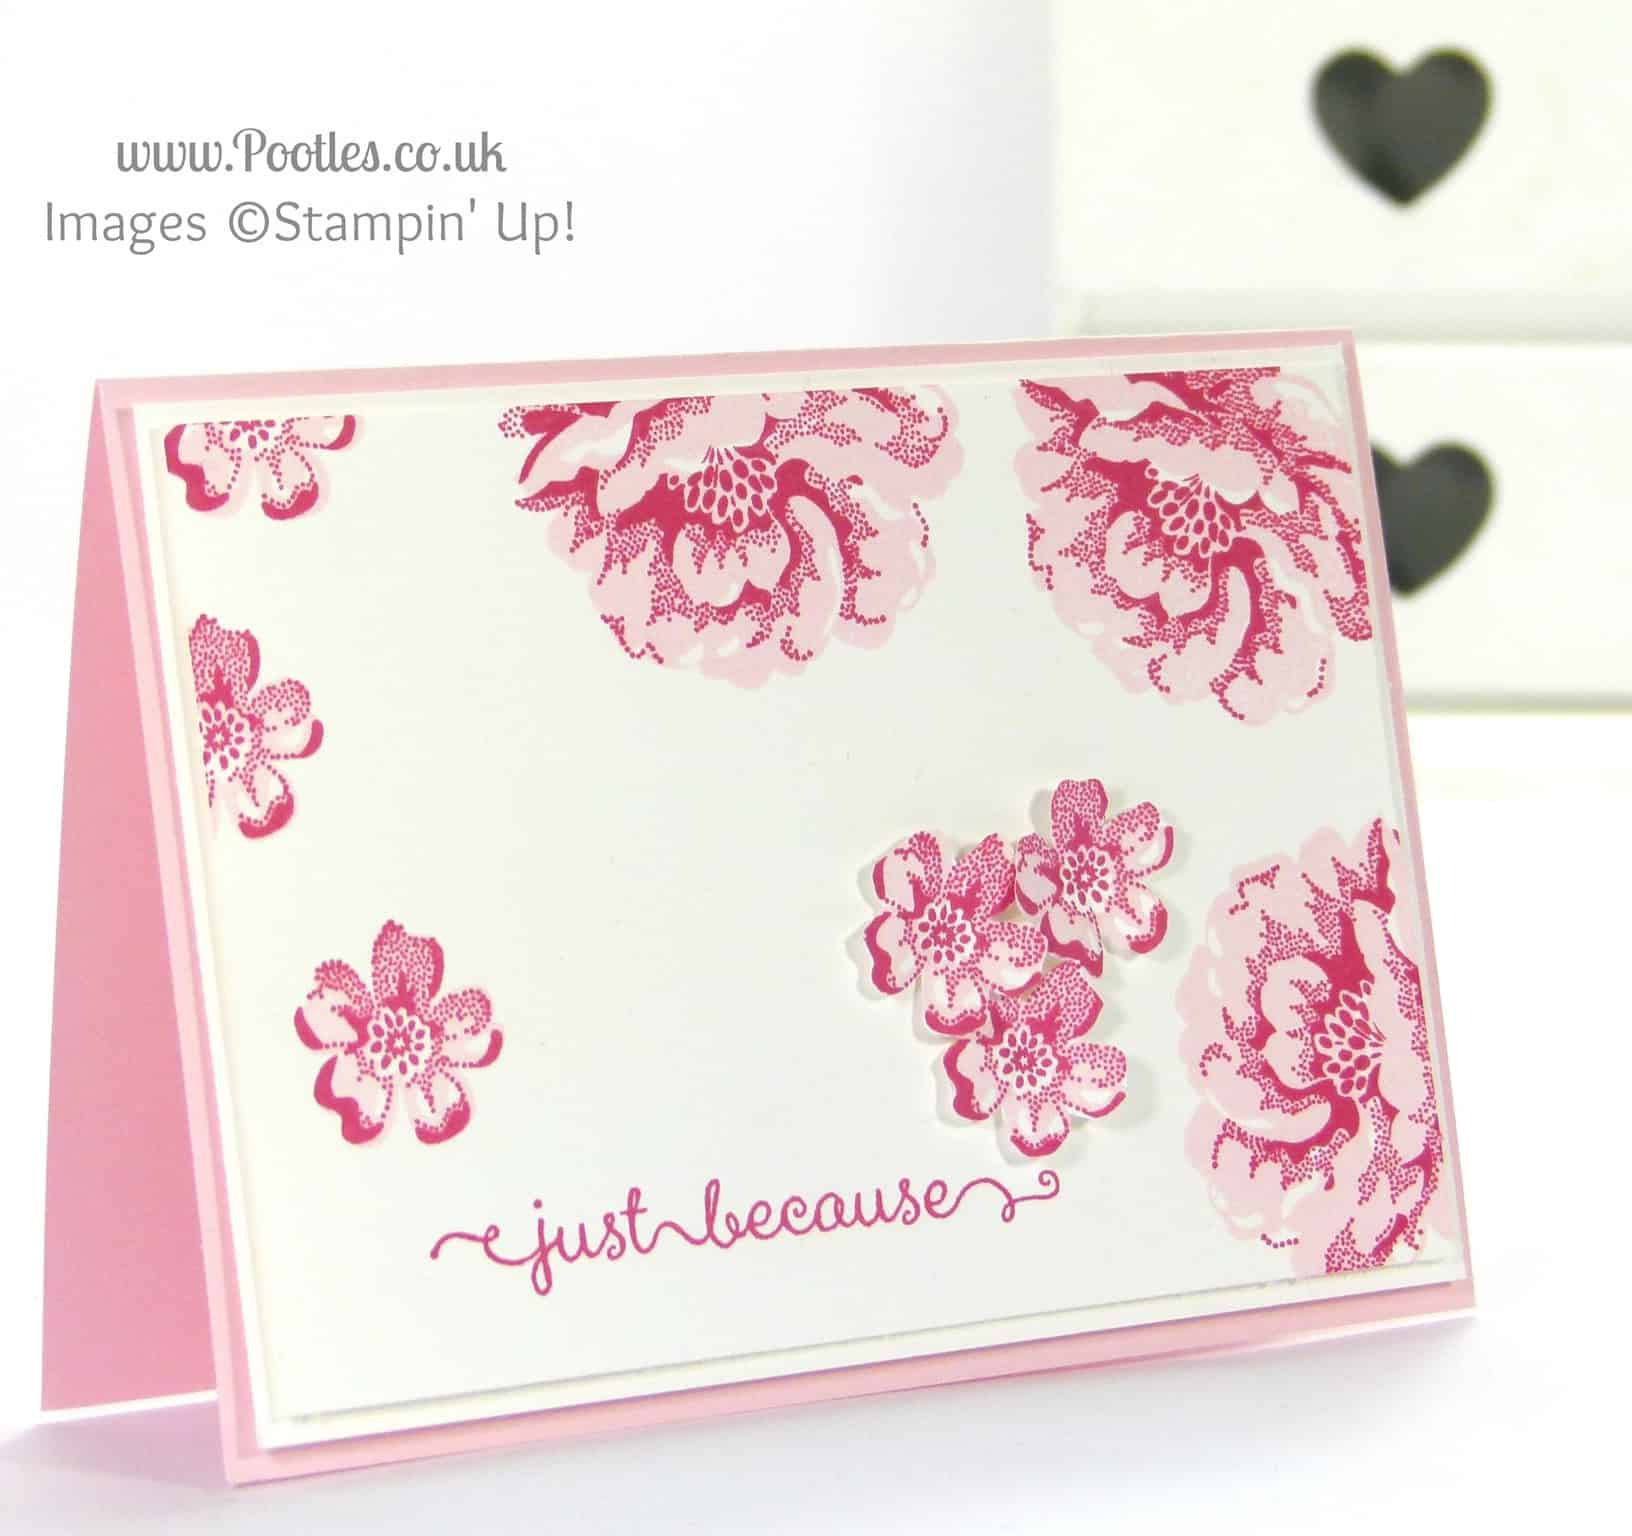 Stampin' Up! UK Independent Demonstrator Pootles - Floral Handmade Card using Stampin' Up! Stippled Blossoms